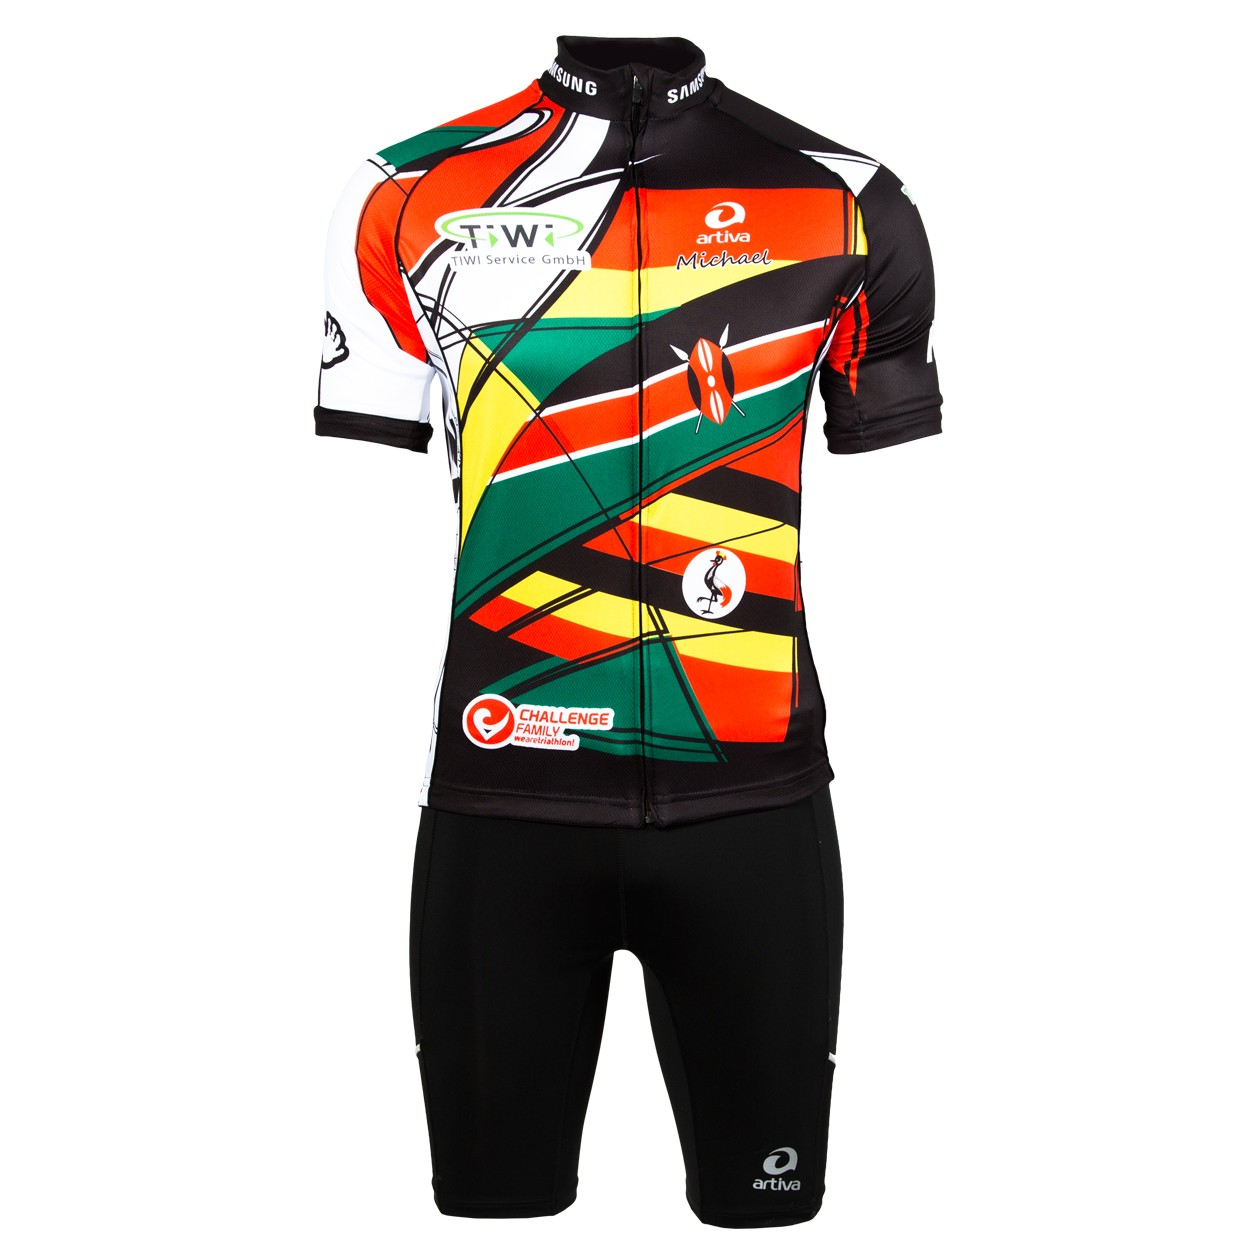 Radtrikot 3 Nationen (Customized Cycling)